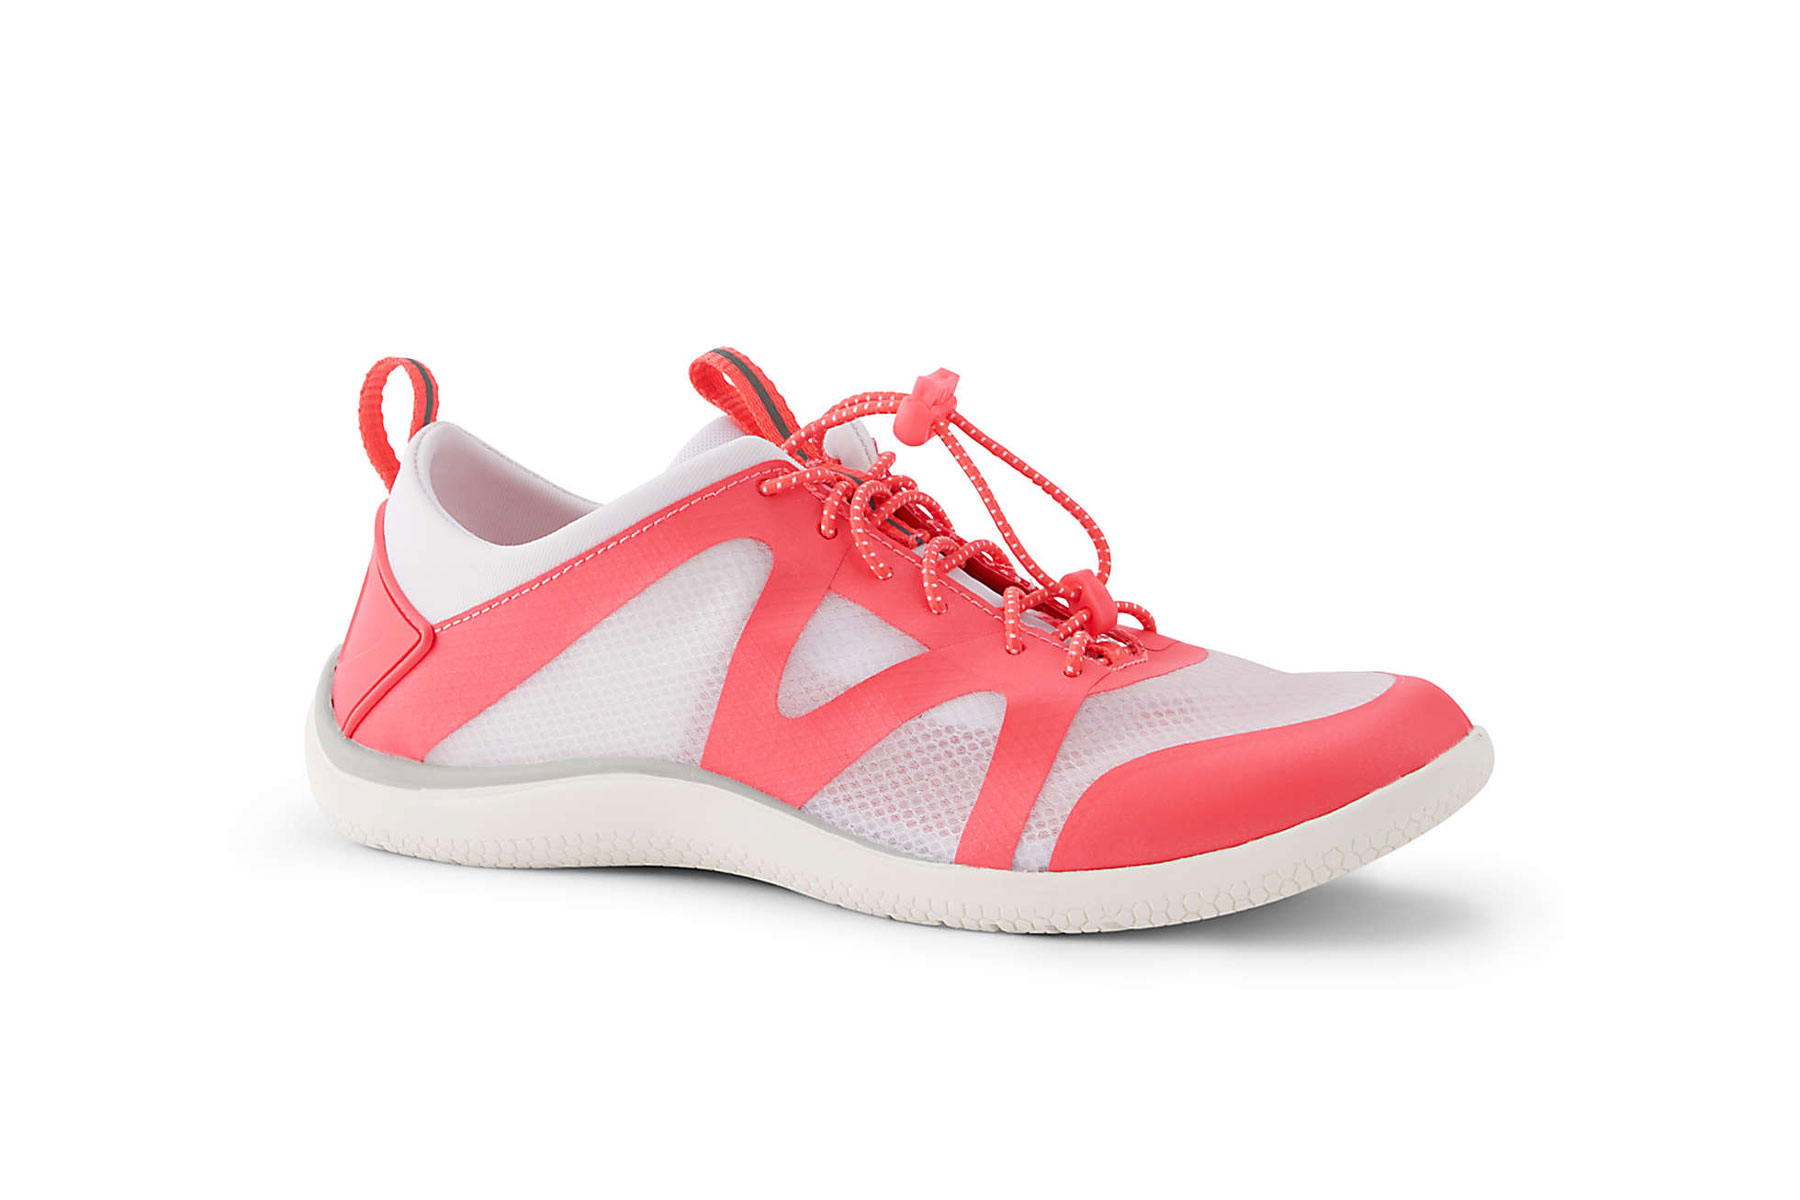 Women's white and pink water shoes